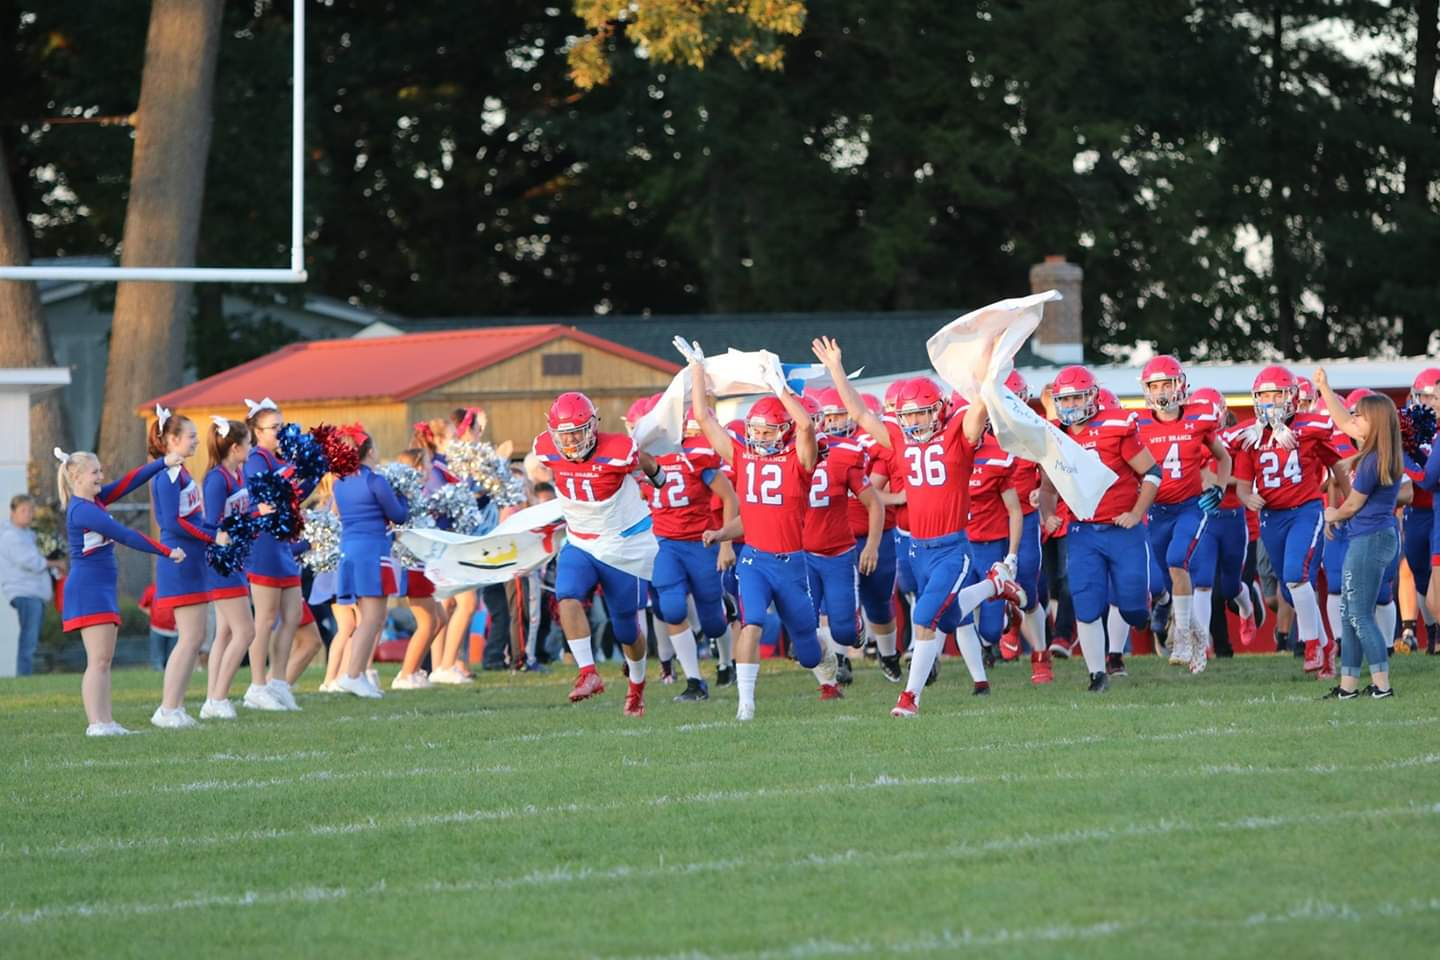 The Warriors run through the banner as the band plays